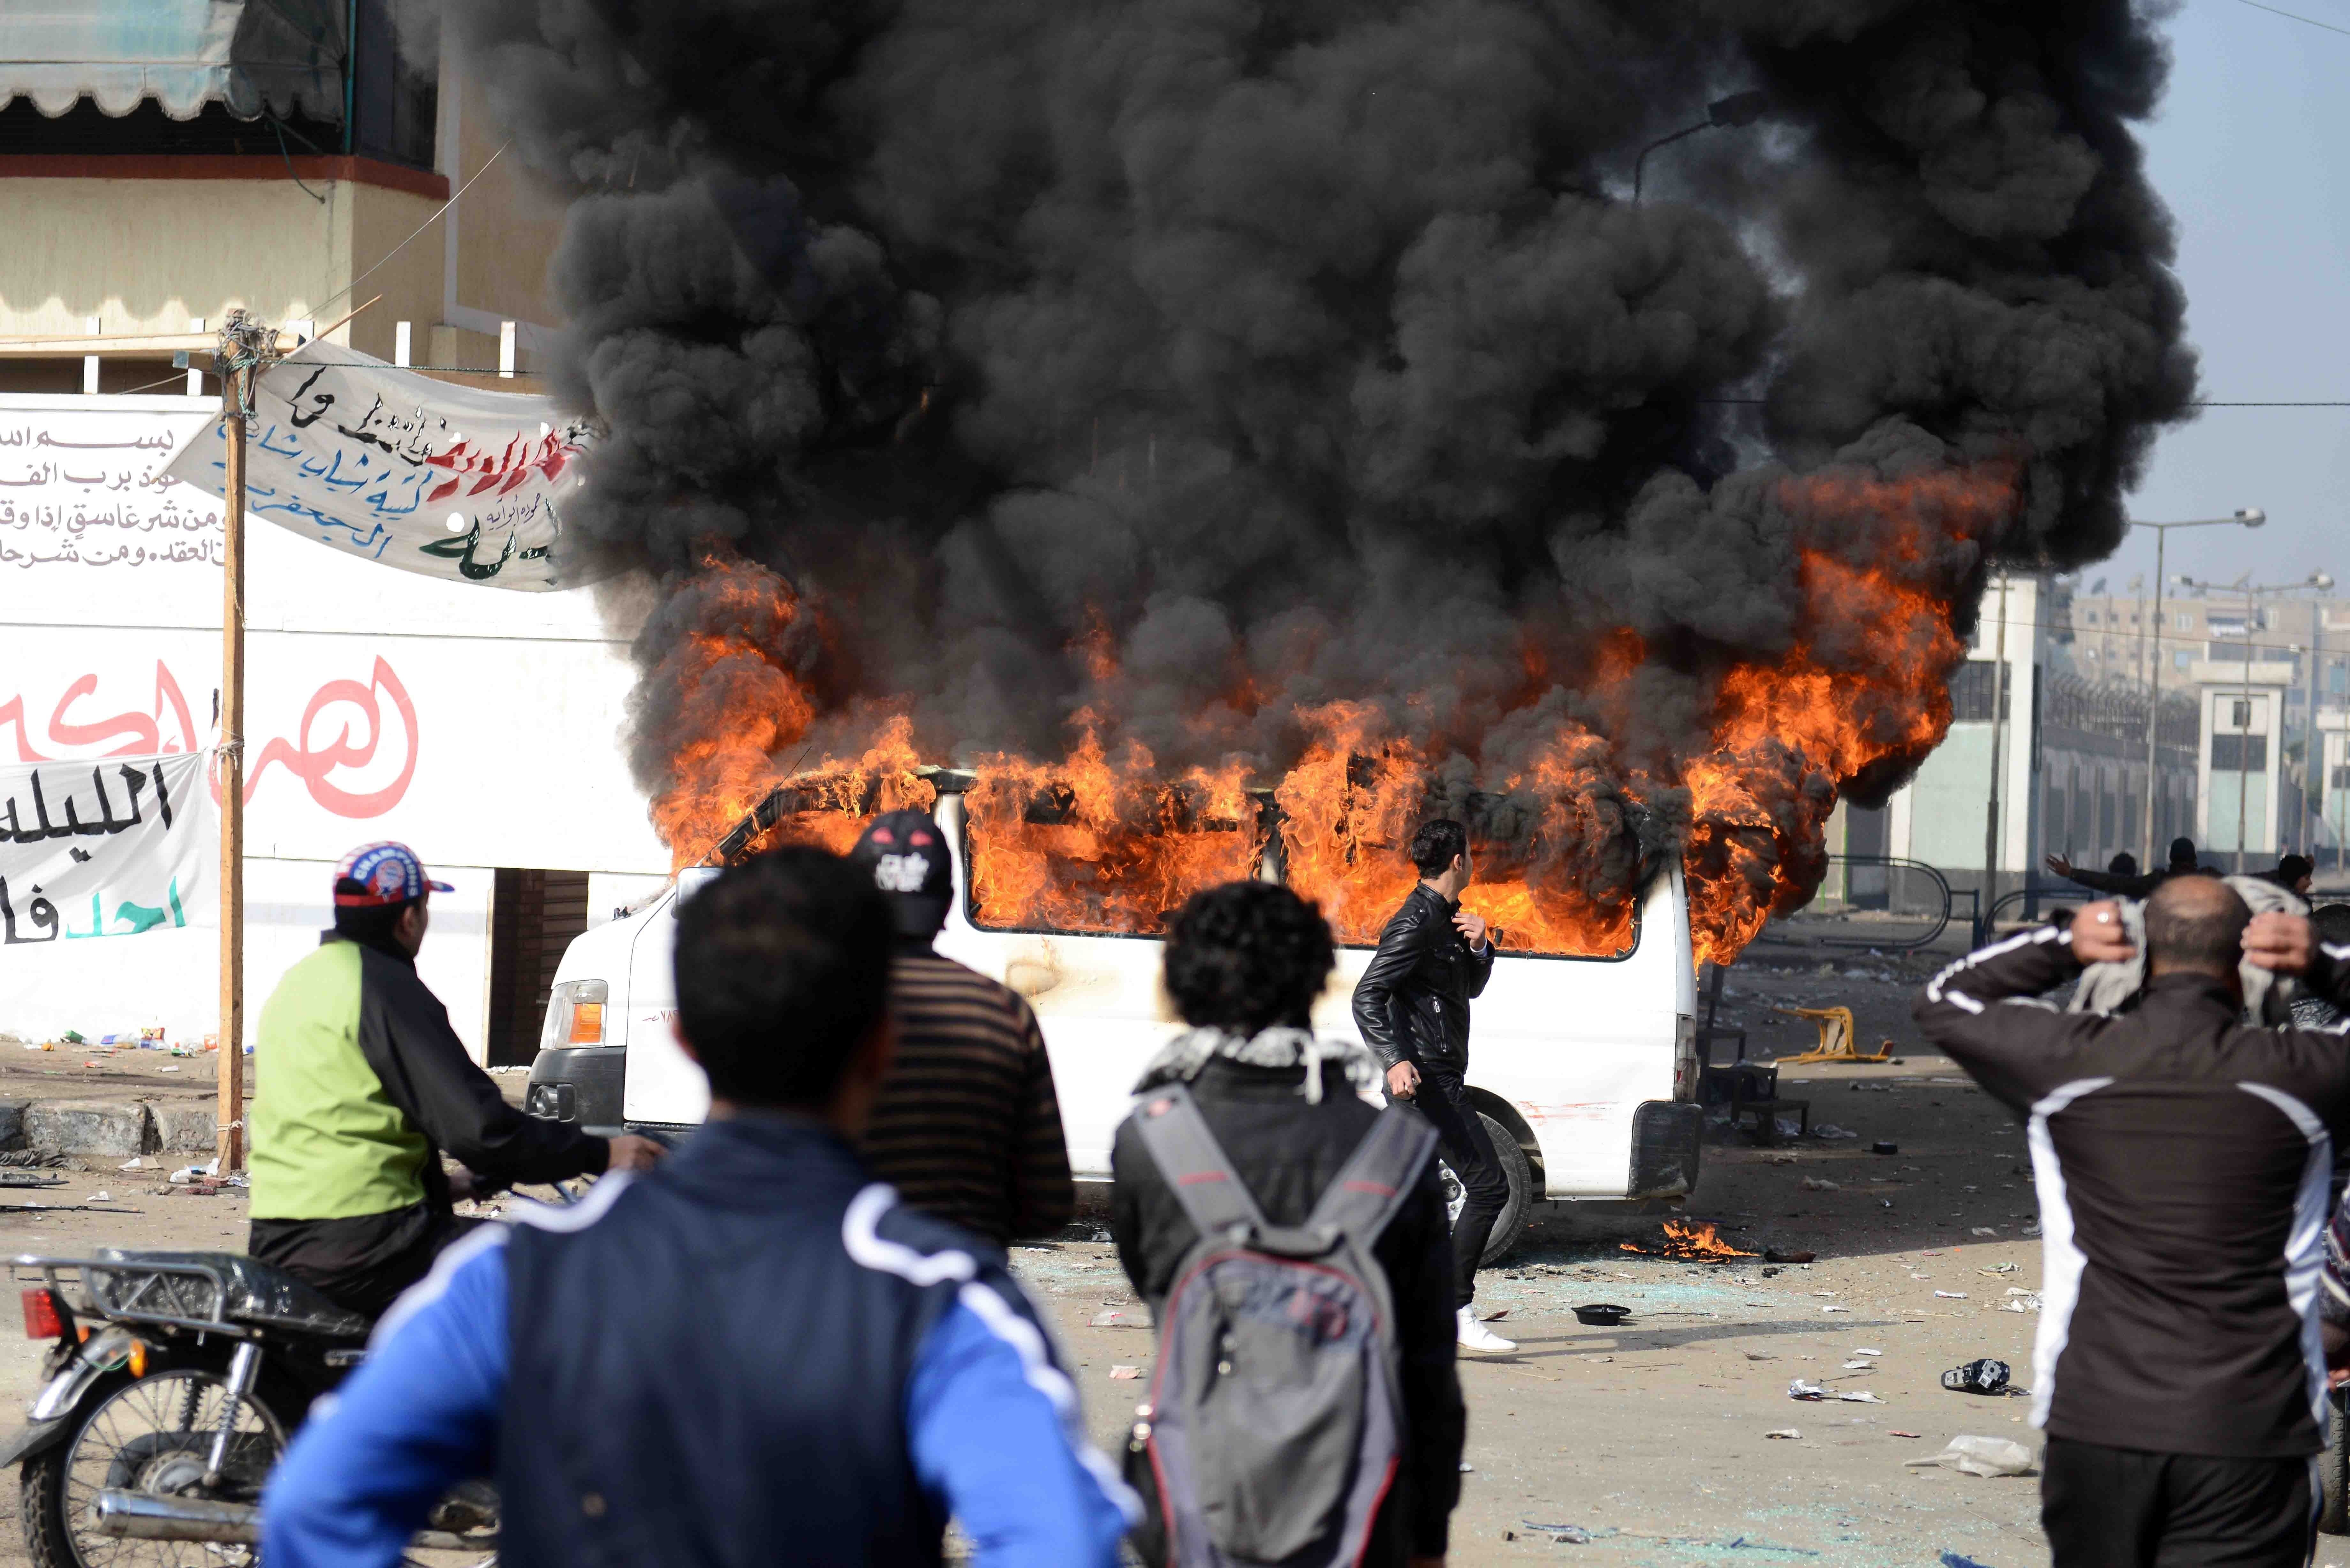 Smoke billows from a burning minibus belonging to a satellite channel after it was set on fire by Egyptian protesters outside the Port Said prison in the Egyptian canal city on Saturday (Photo courtesy of AFP)